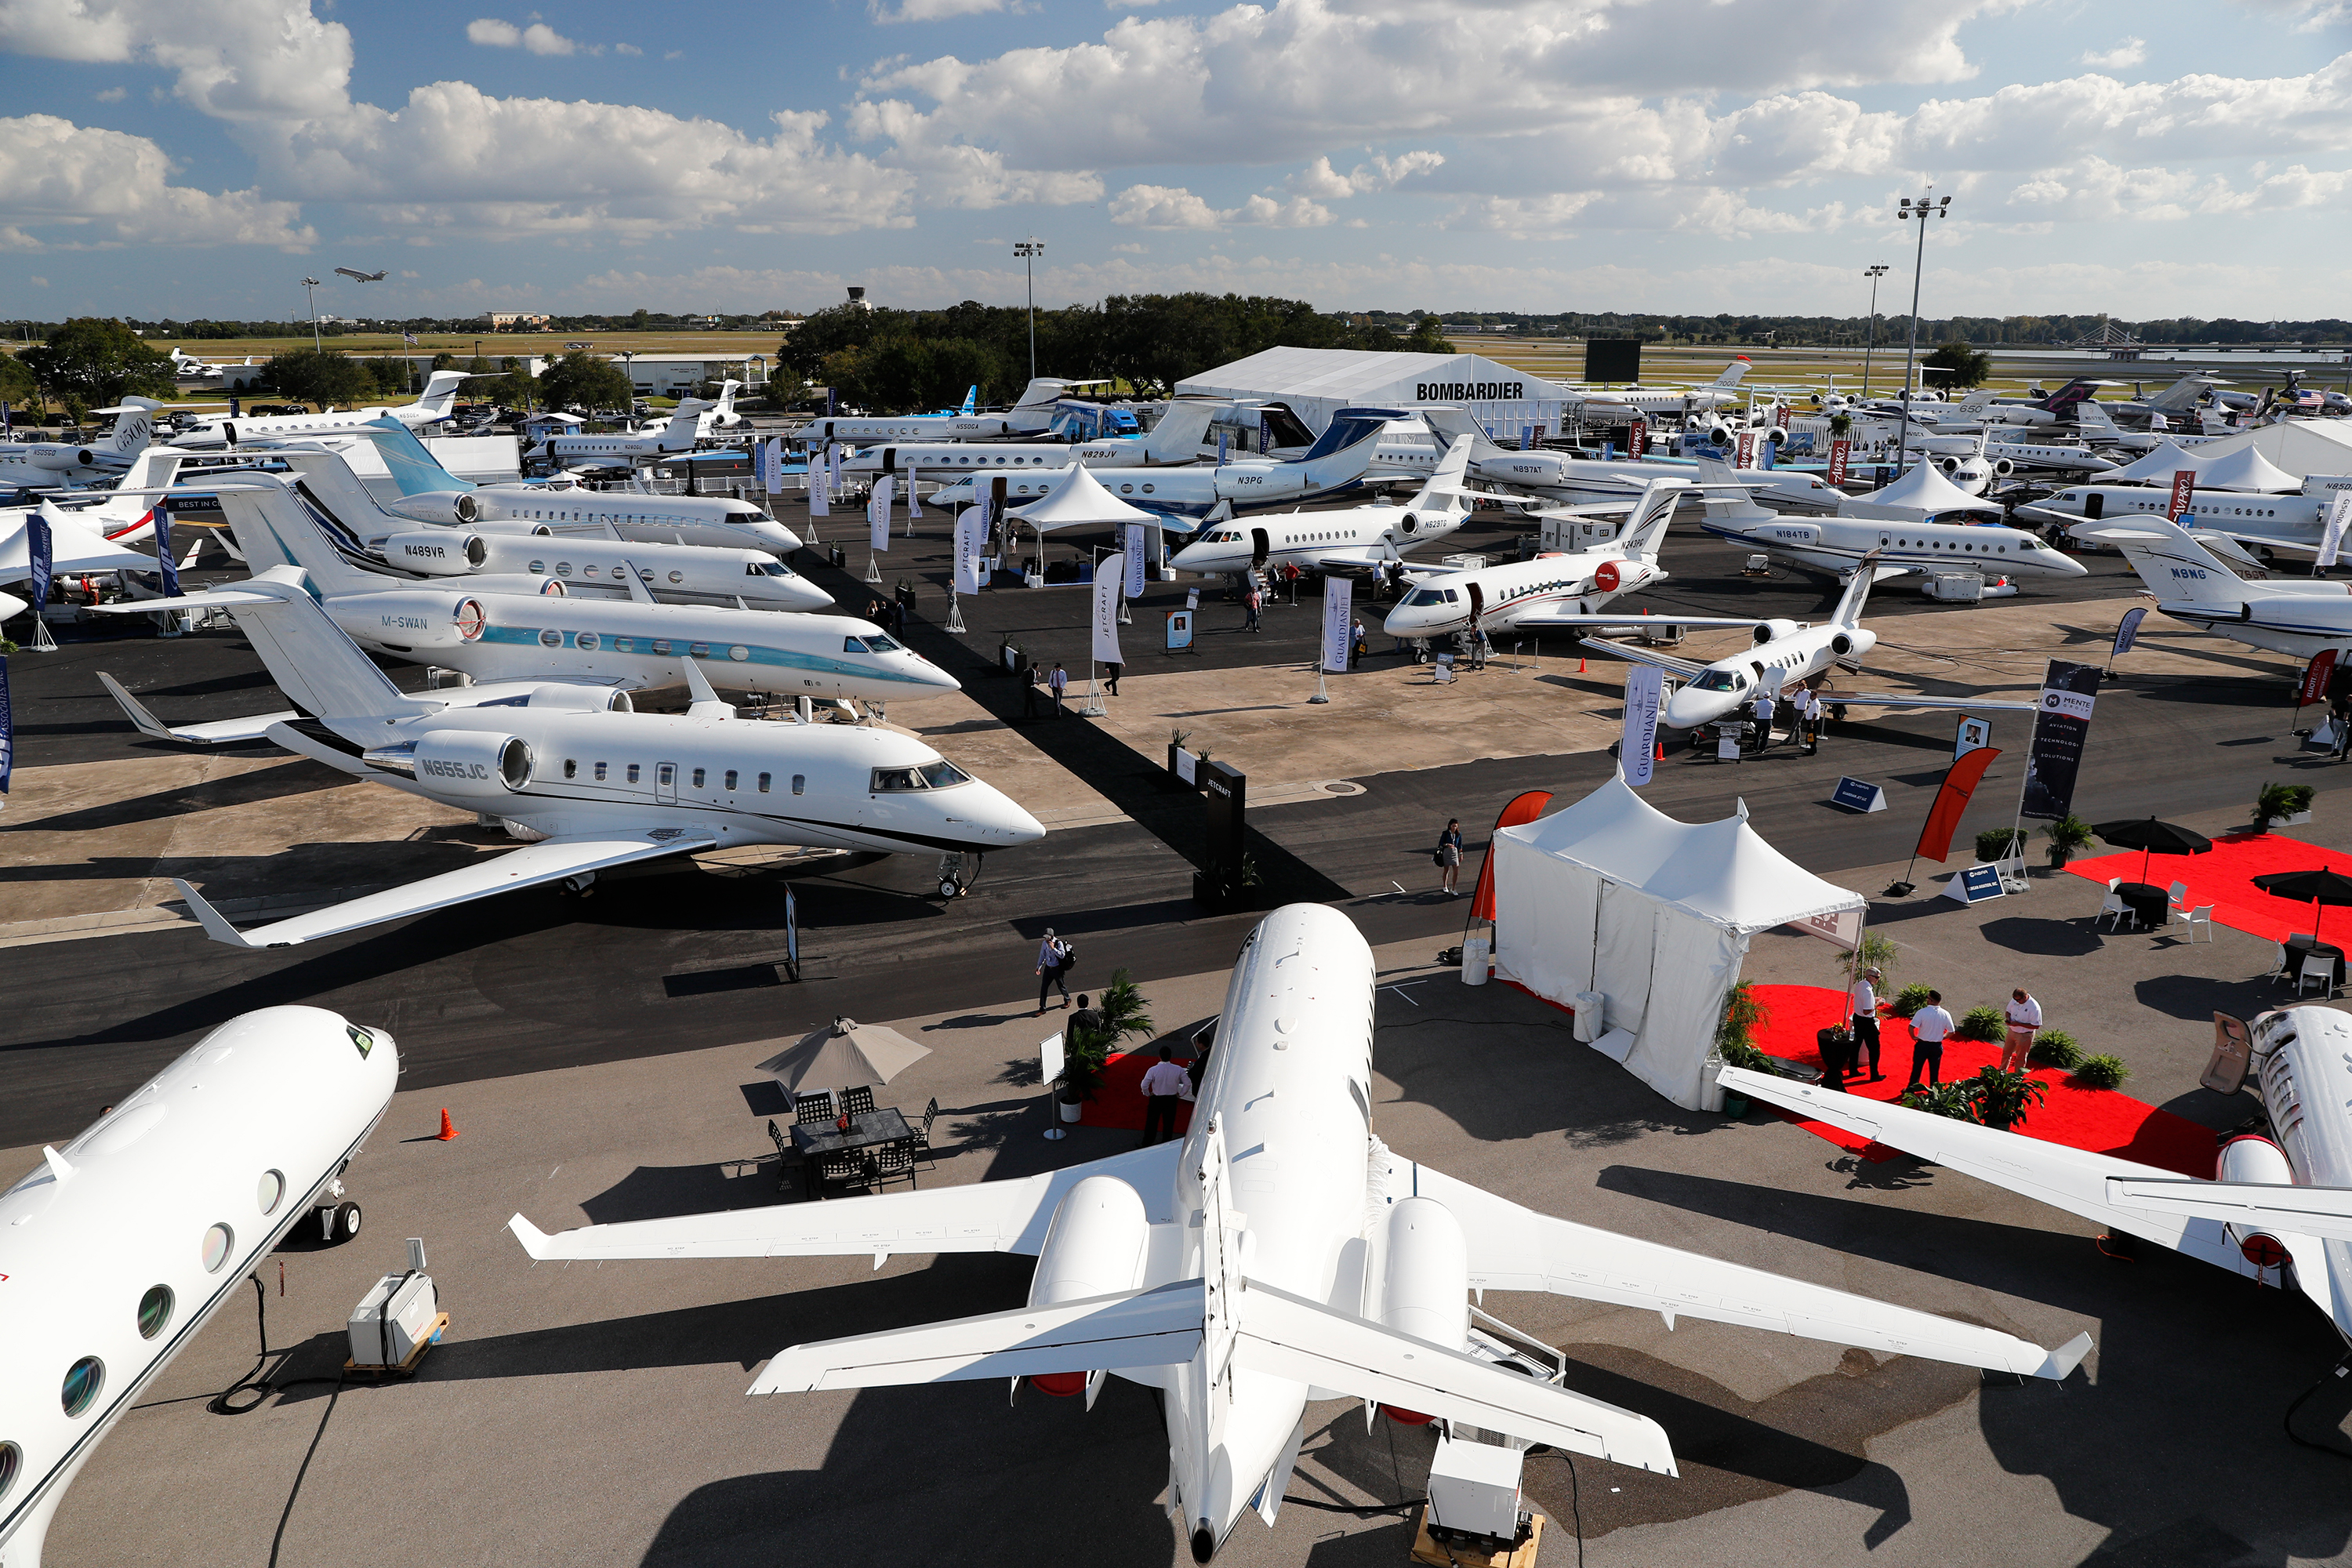 Aerial mobility took center stage at one of business aviation's premier events